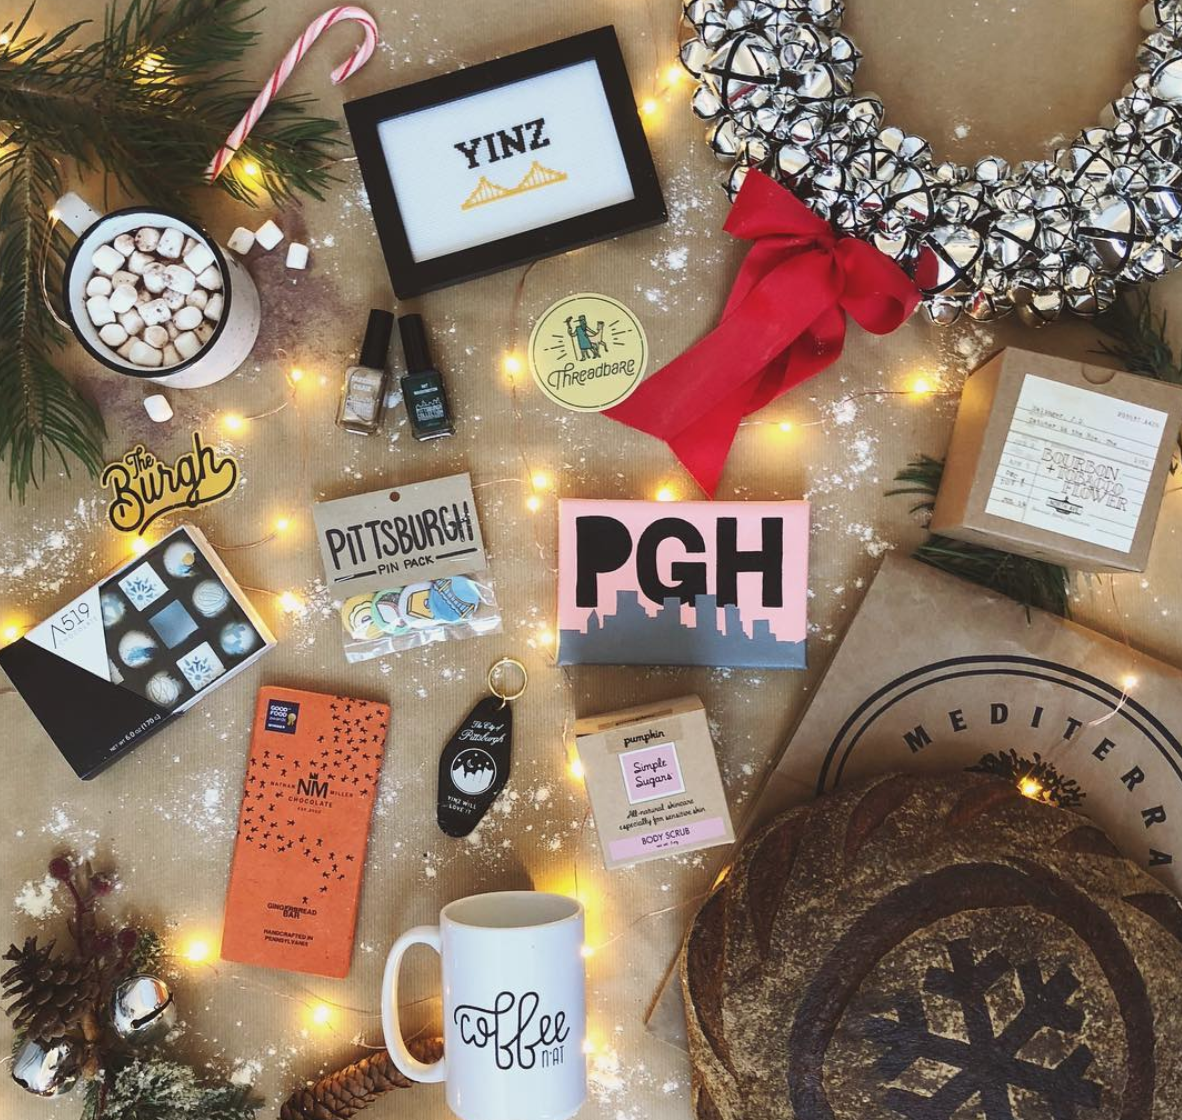 Enter Pittsburgh Holiday Giveaway to Win Local Goodies and Gifts!